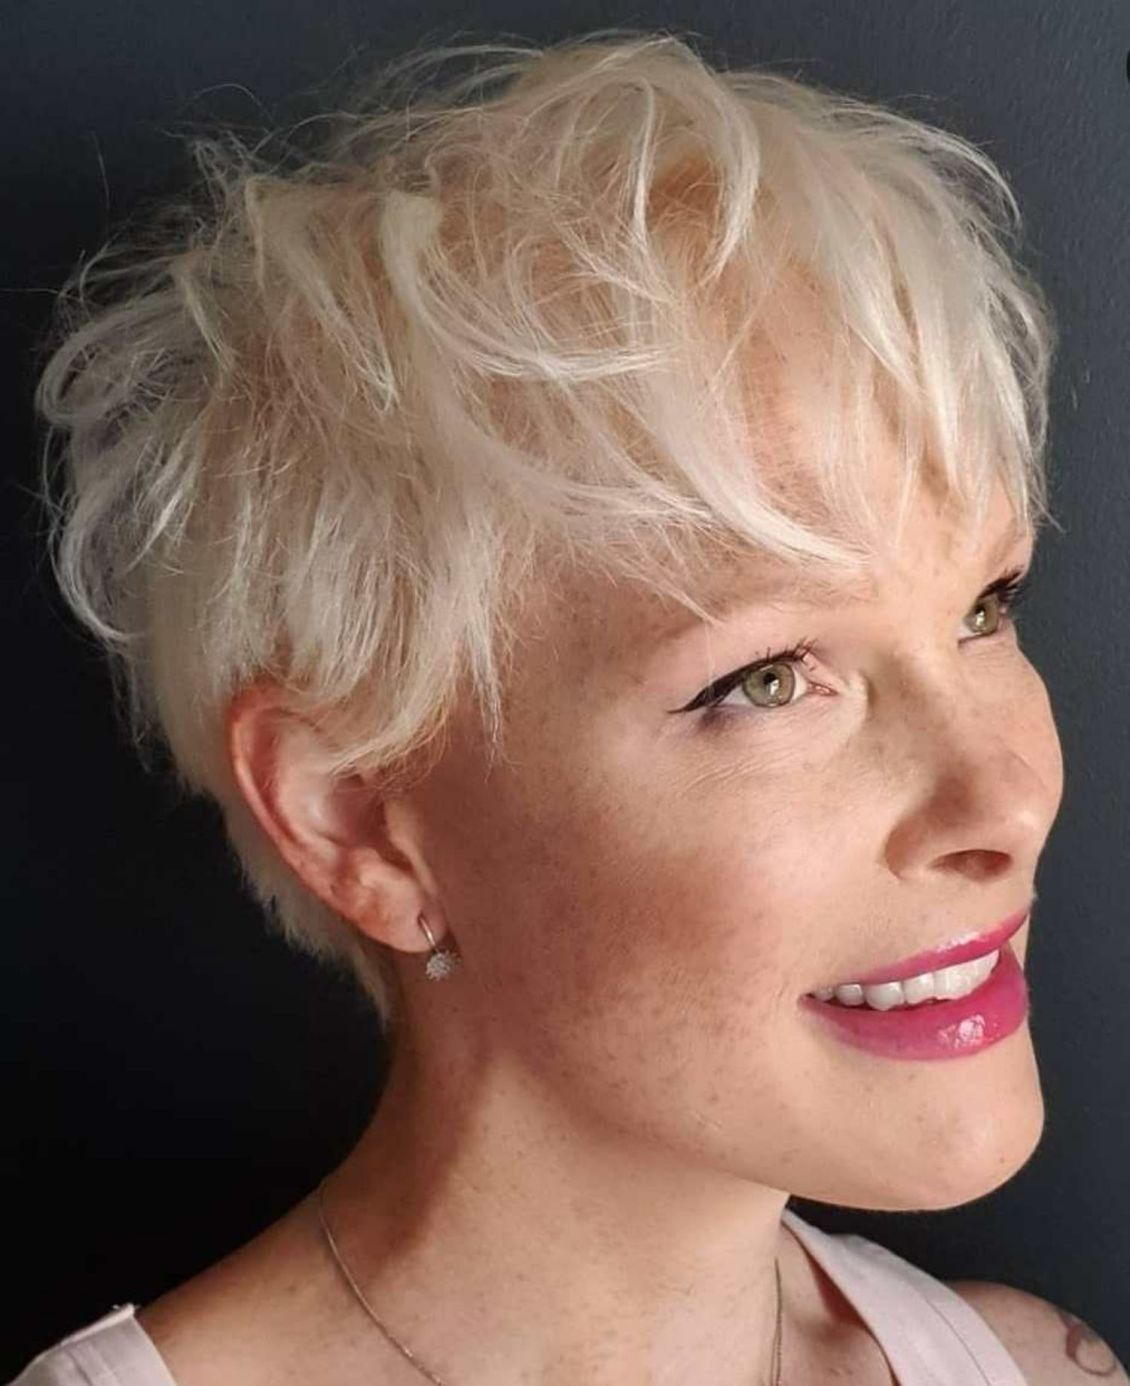 Latest Short Hairstyles for Women Over 50 (Updated 2021) 8412ca3566b9e3171d717e0d0729239e